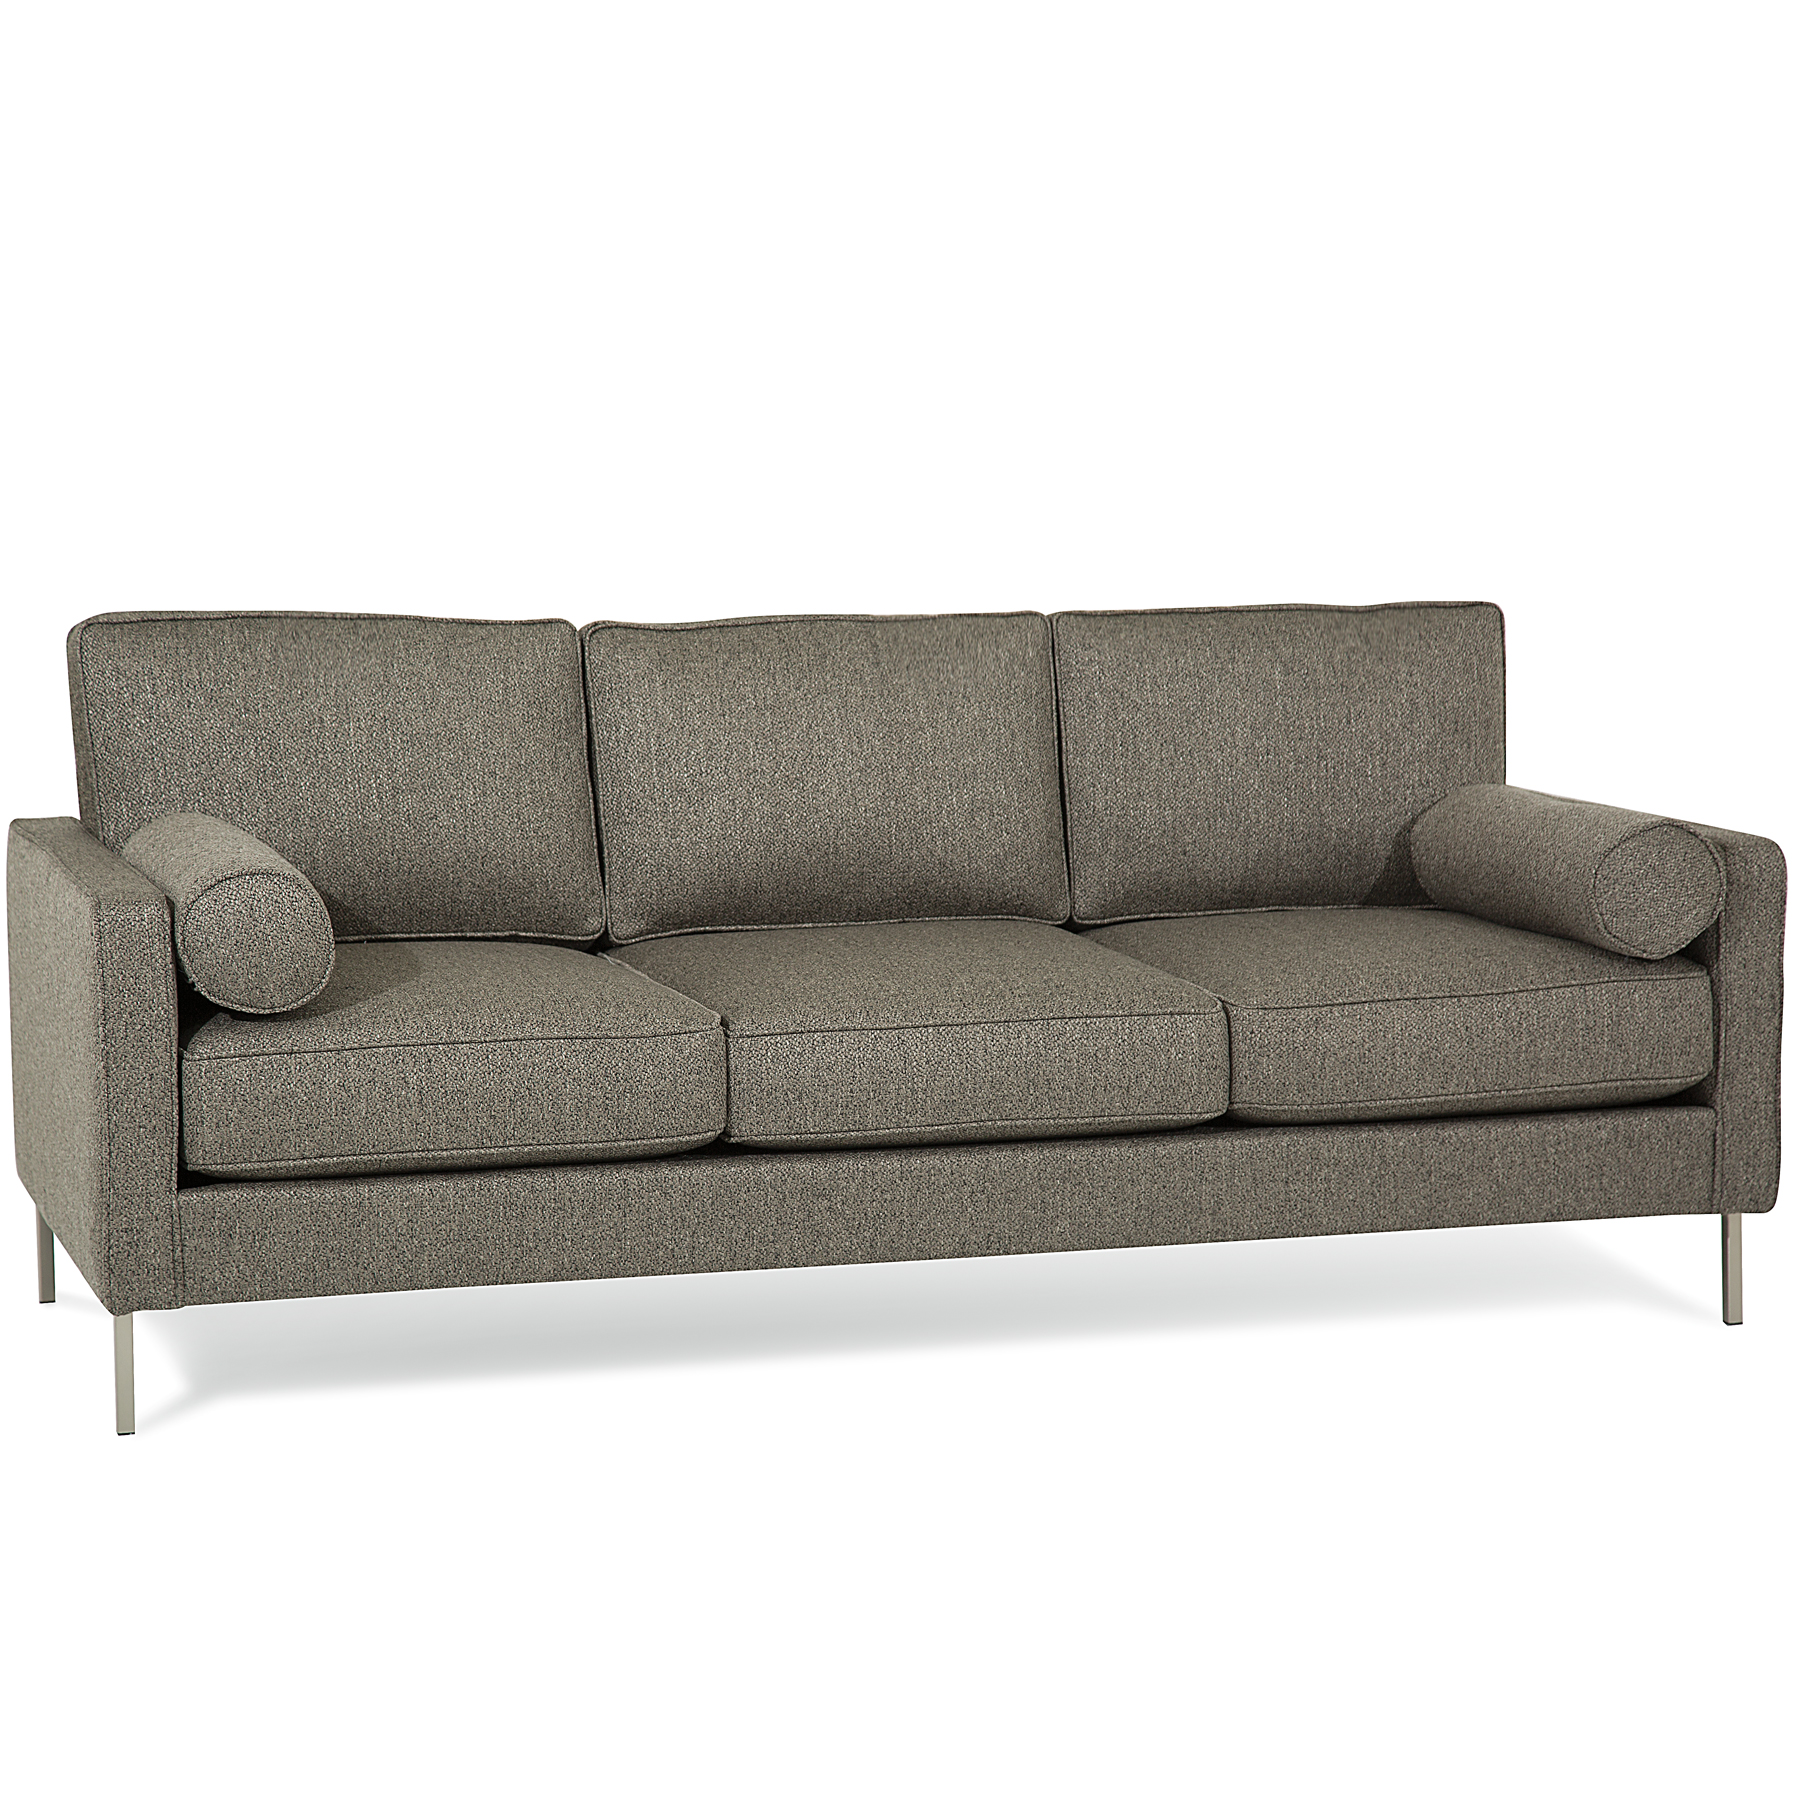 Amazing Brandon 80 Sofa 150 Fabrics Sofas And Sectionals Alphanode Cool Chair Designs And Ideas Alphanodeonline